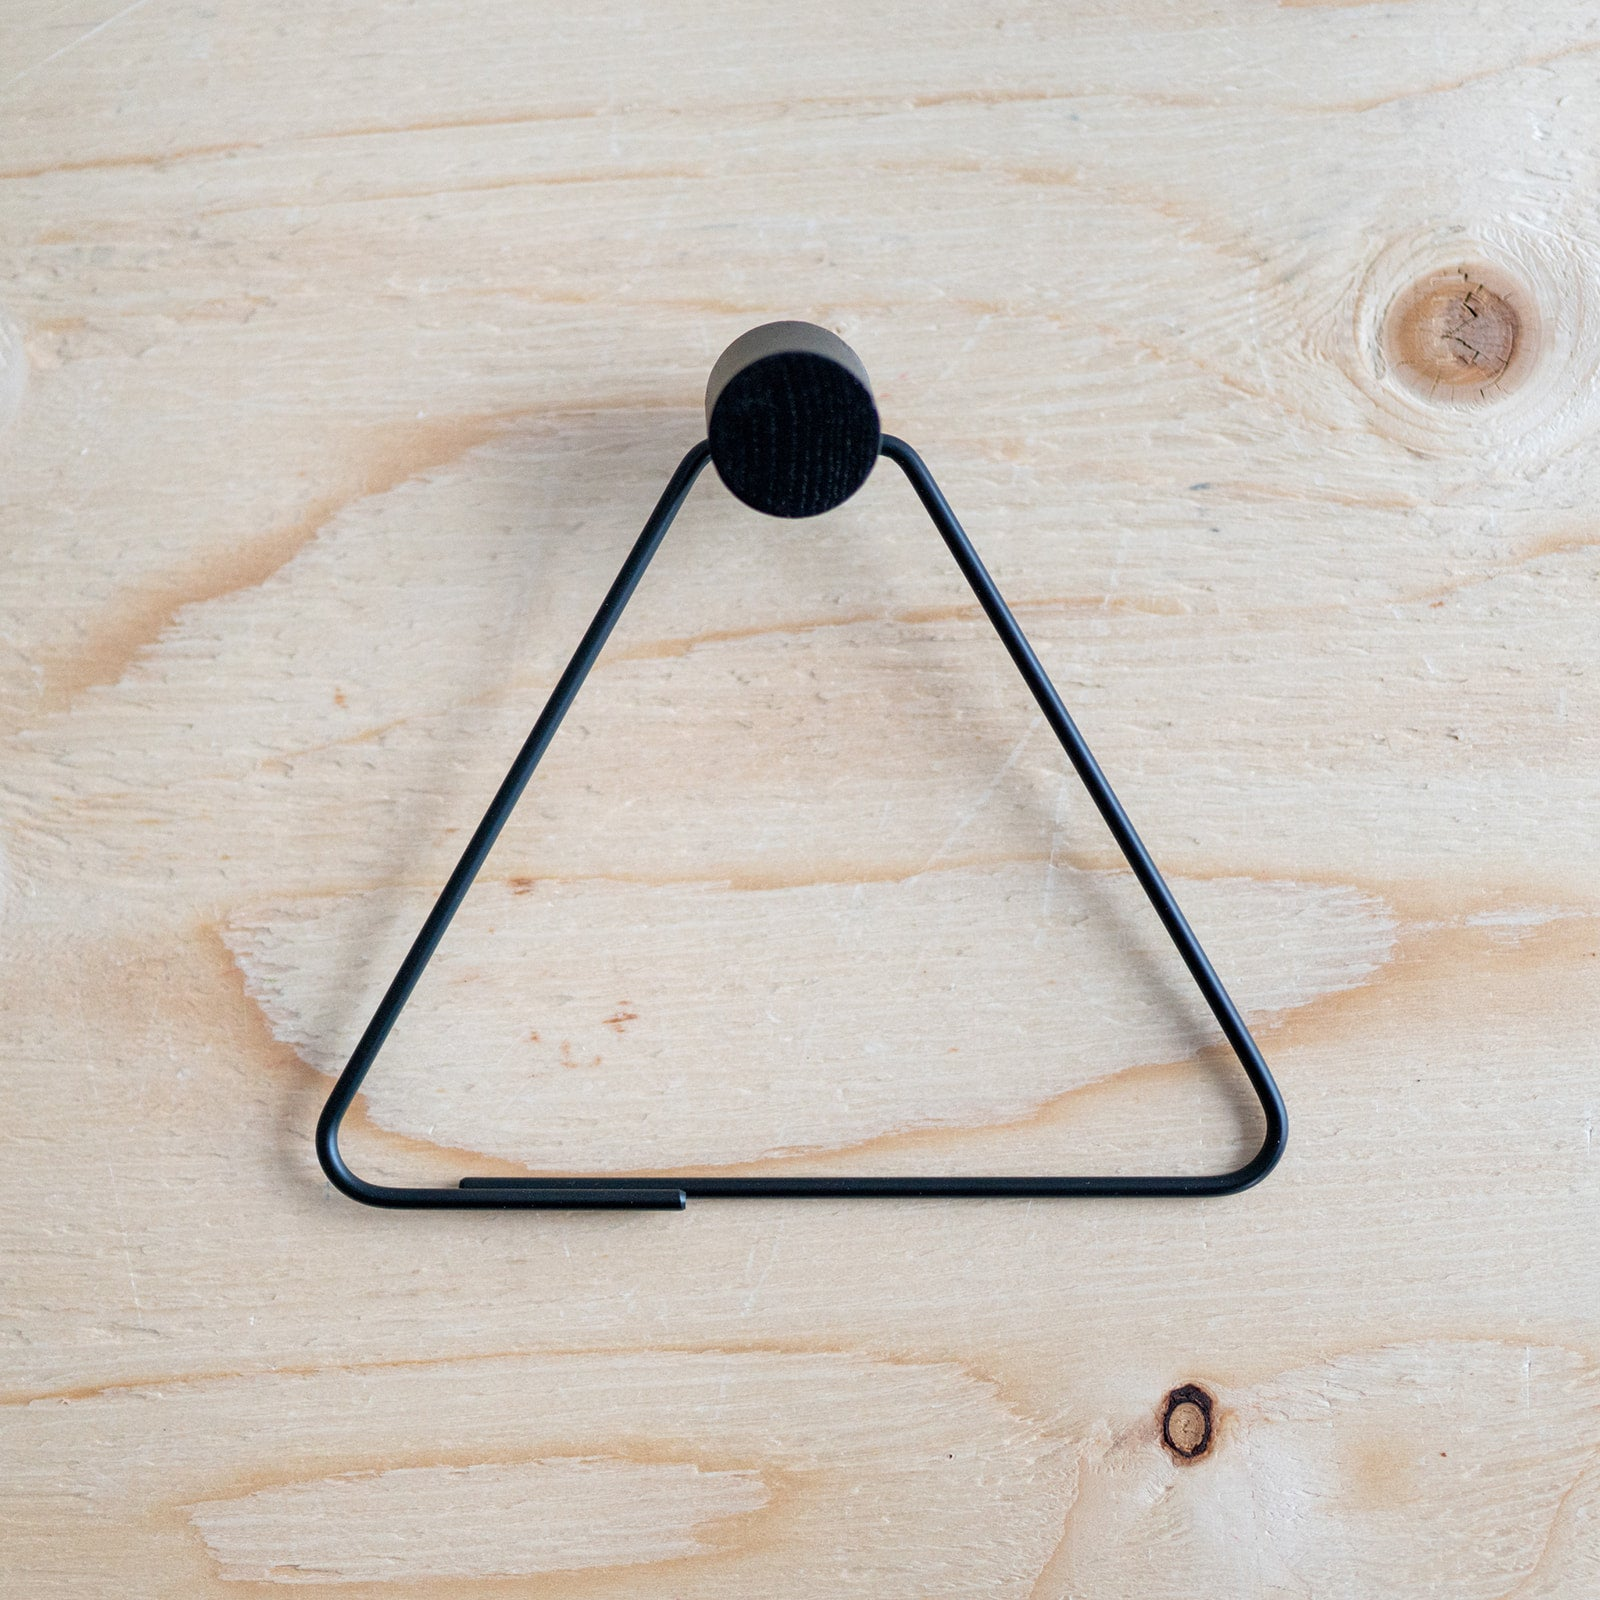 Black Triangle Toilet Paper Holder - Rug & Weave